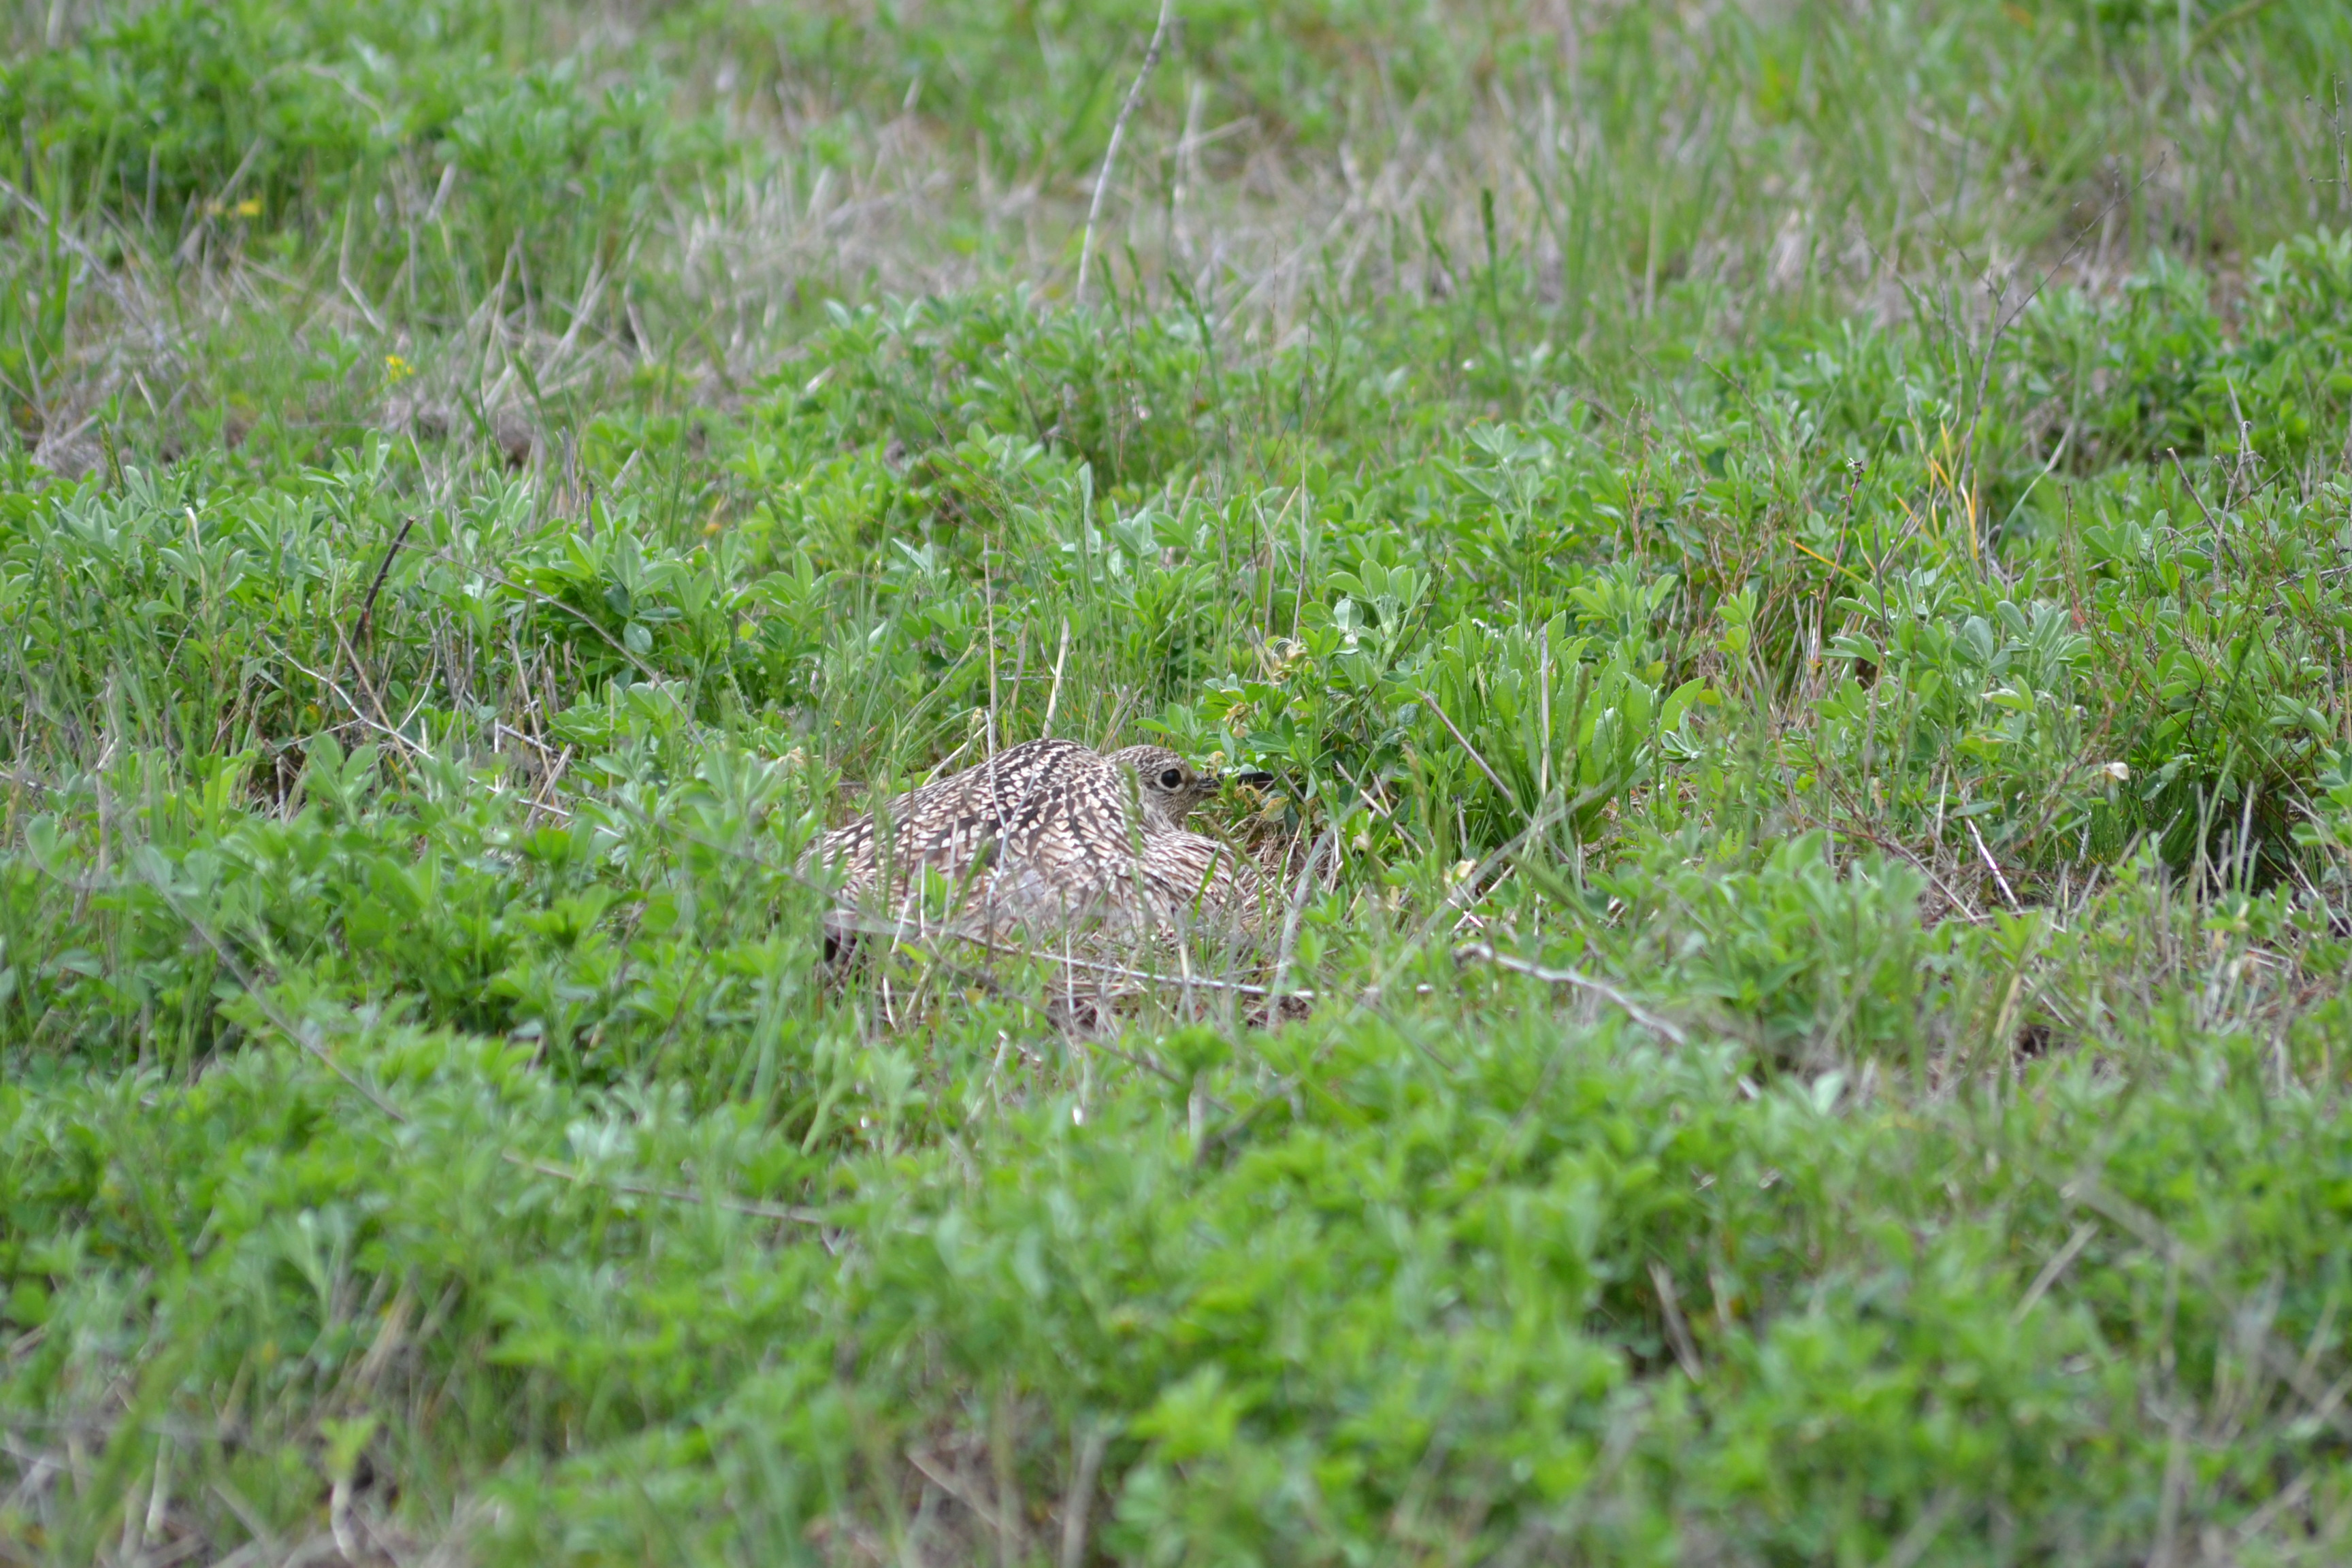 brown bird sitting on ground in alfalfa field